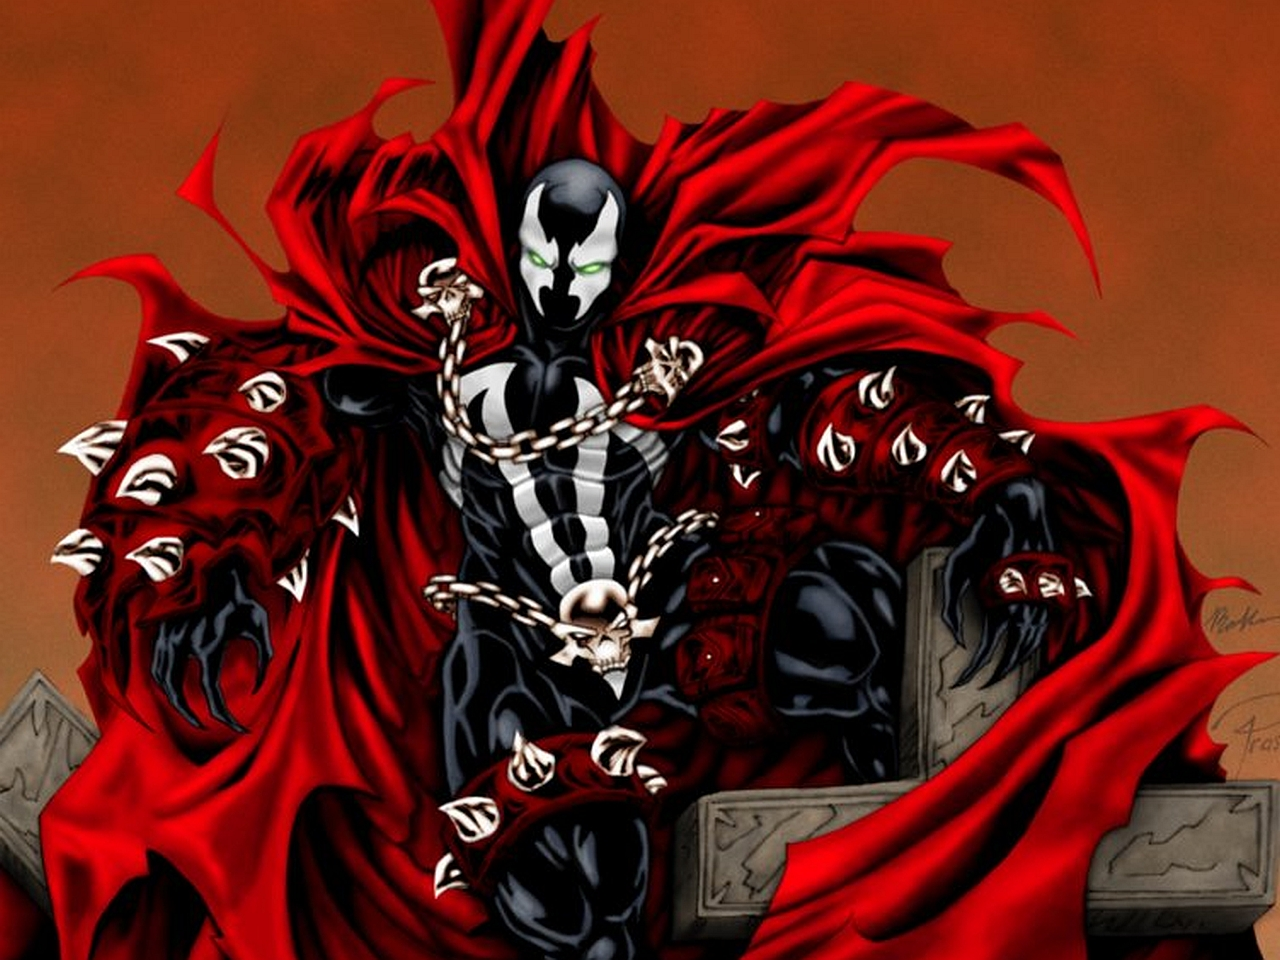 Spawn Vs. Carnage, page 1 Dominant Man In Suit